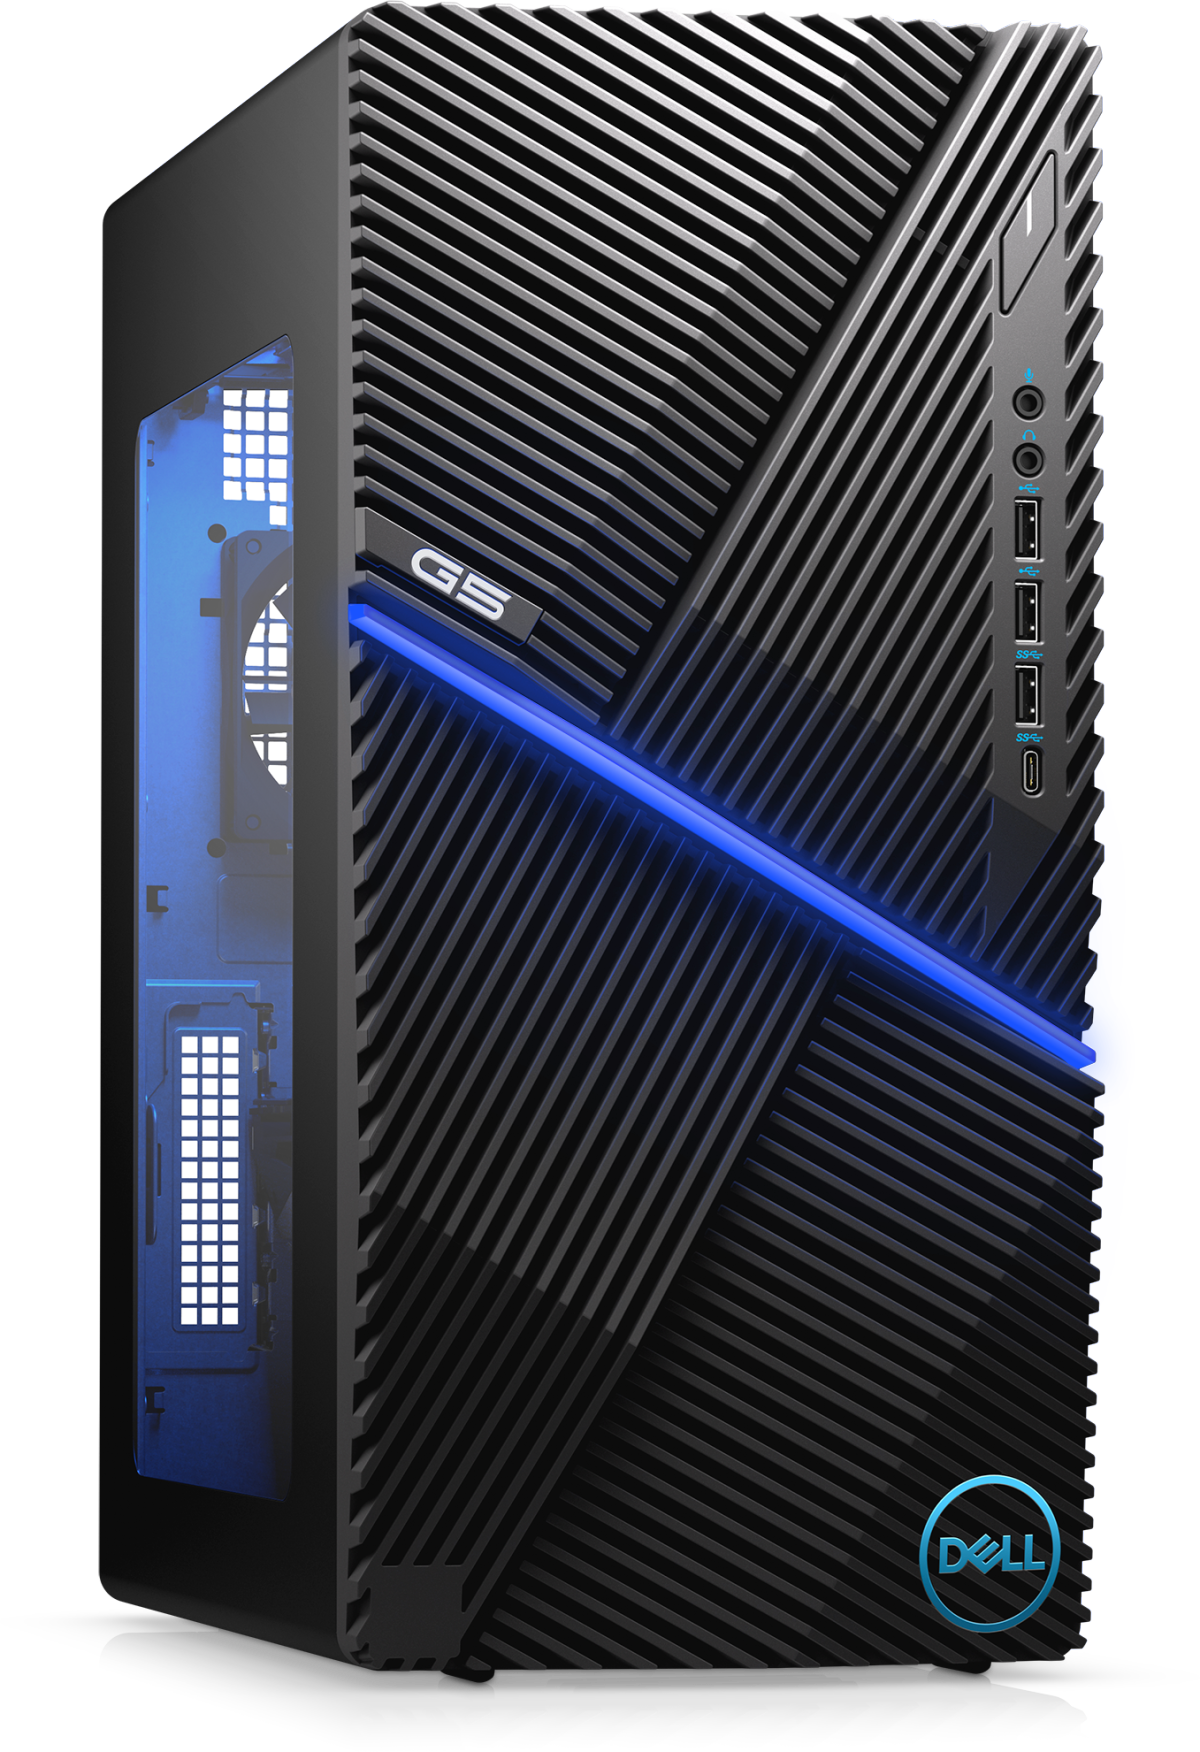 Dell overhauls Alienware Aurora desktop at Gamescom 2019